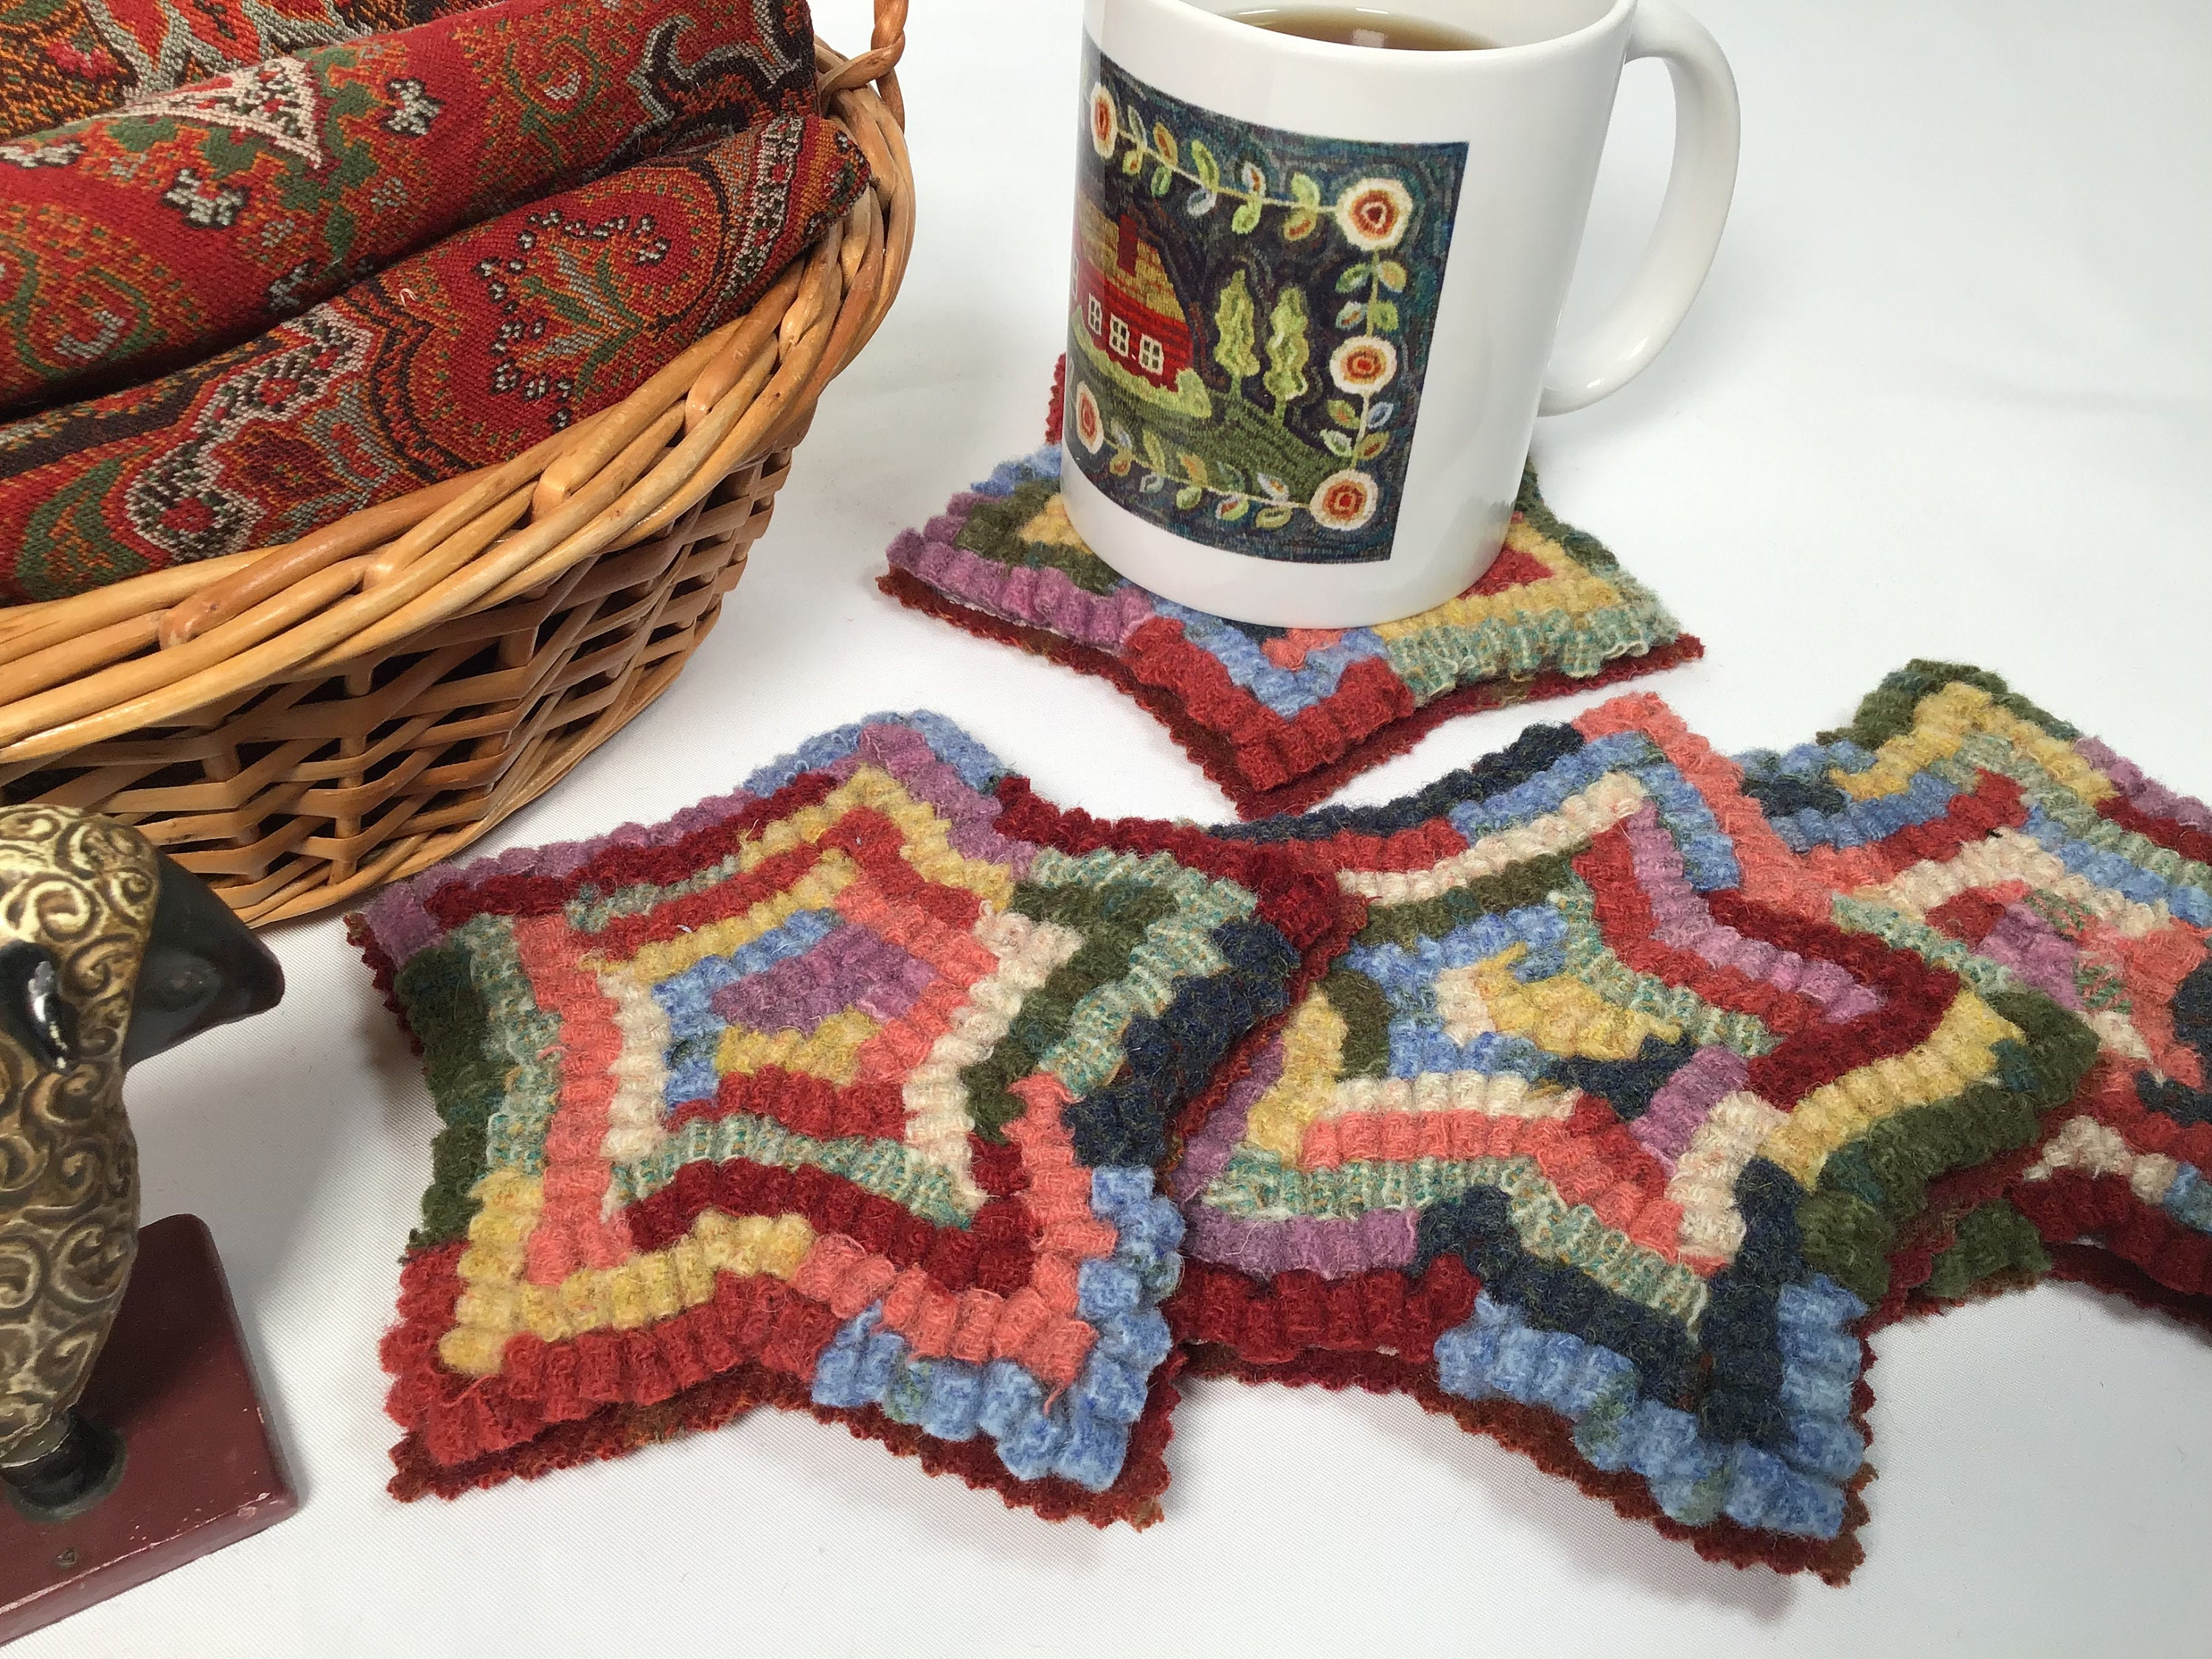 Star Mug Rugs Kit Or Wool Pack W385 Diy Mug Rugs Or